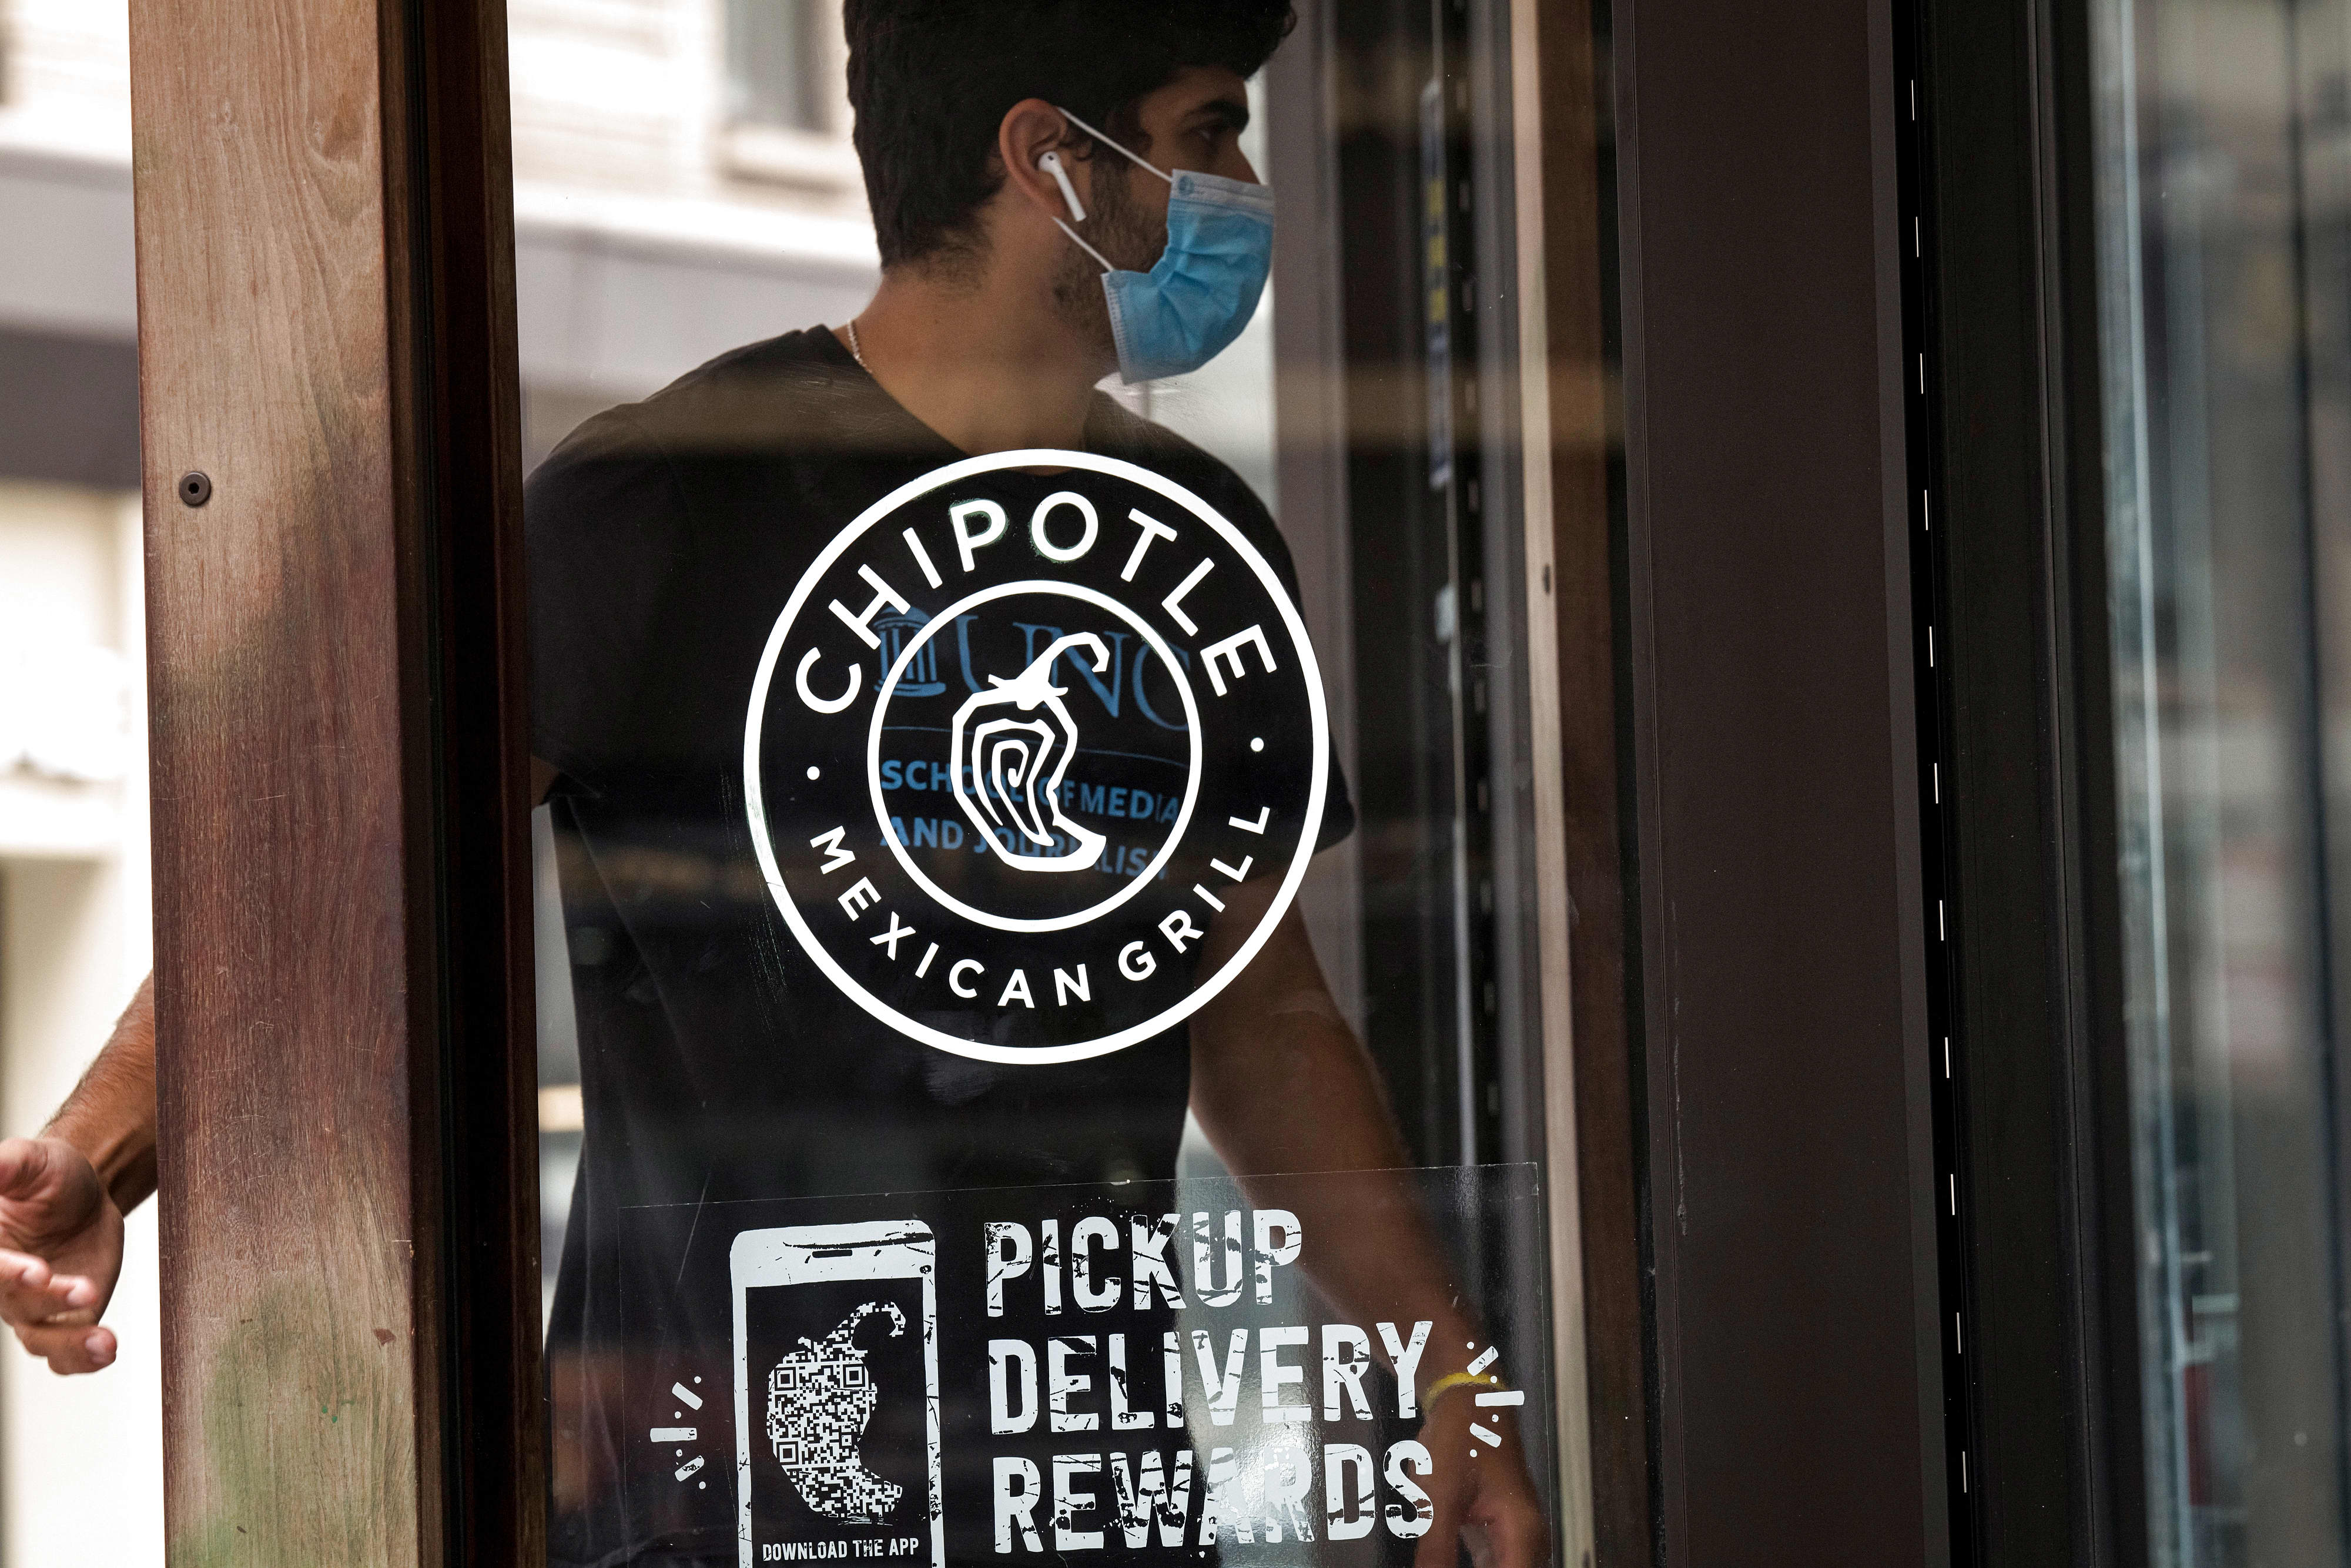 Chipotle CFO says digital sales remain strong even as dining rooms reopen from Covid closures